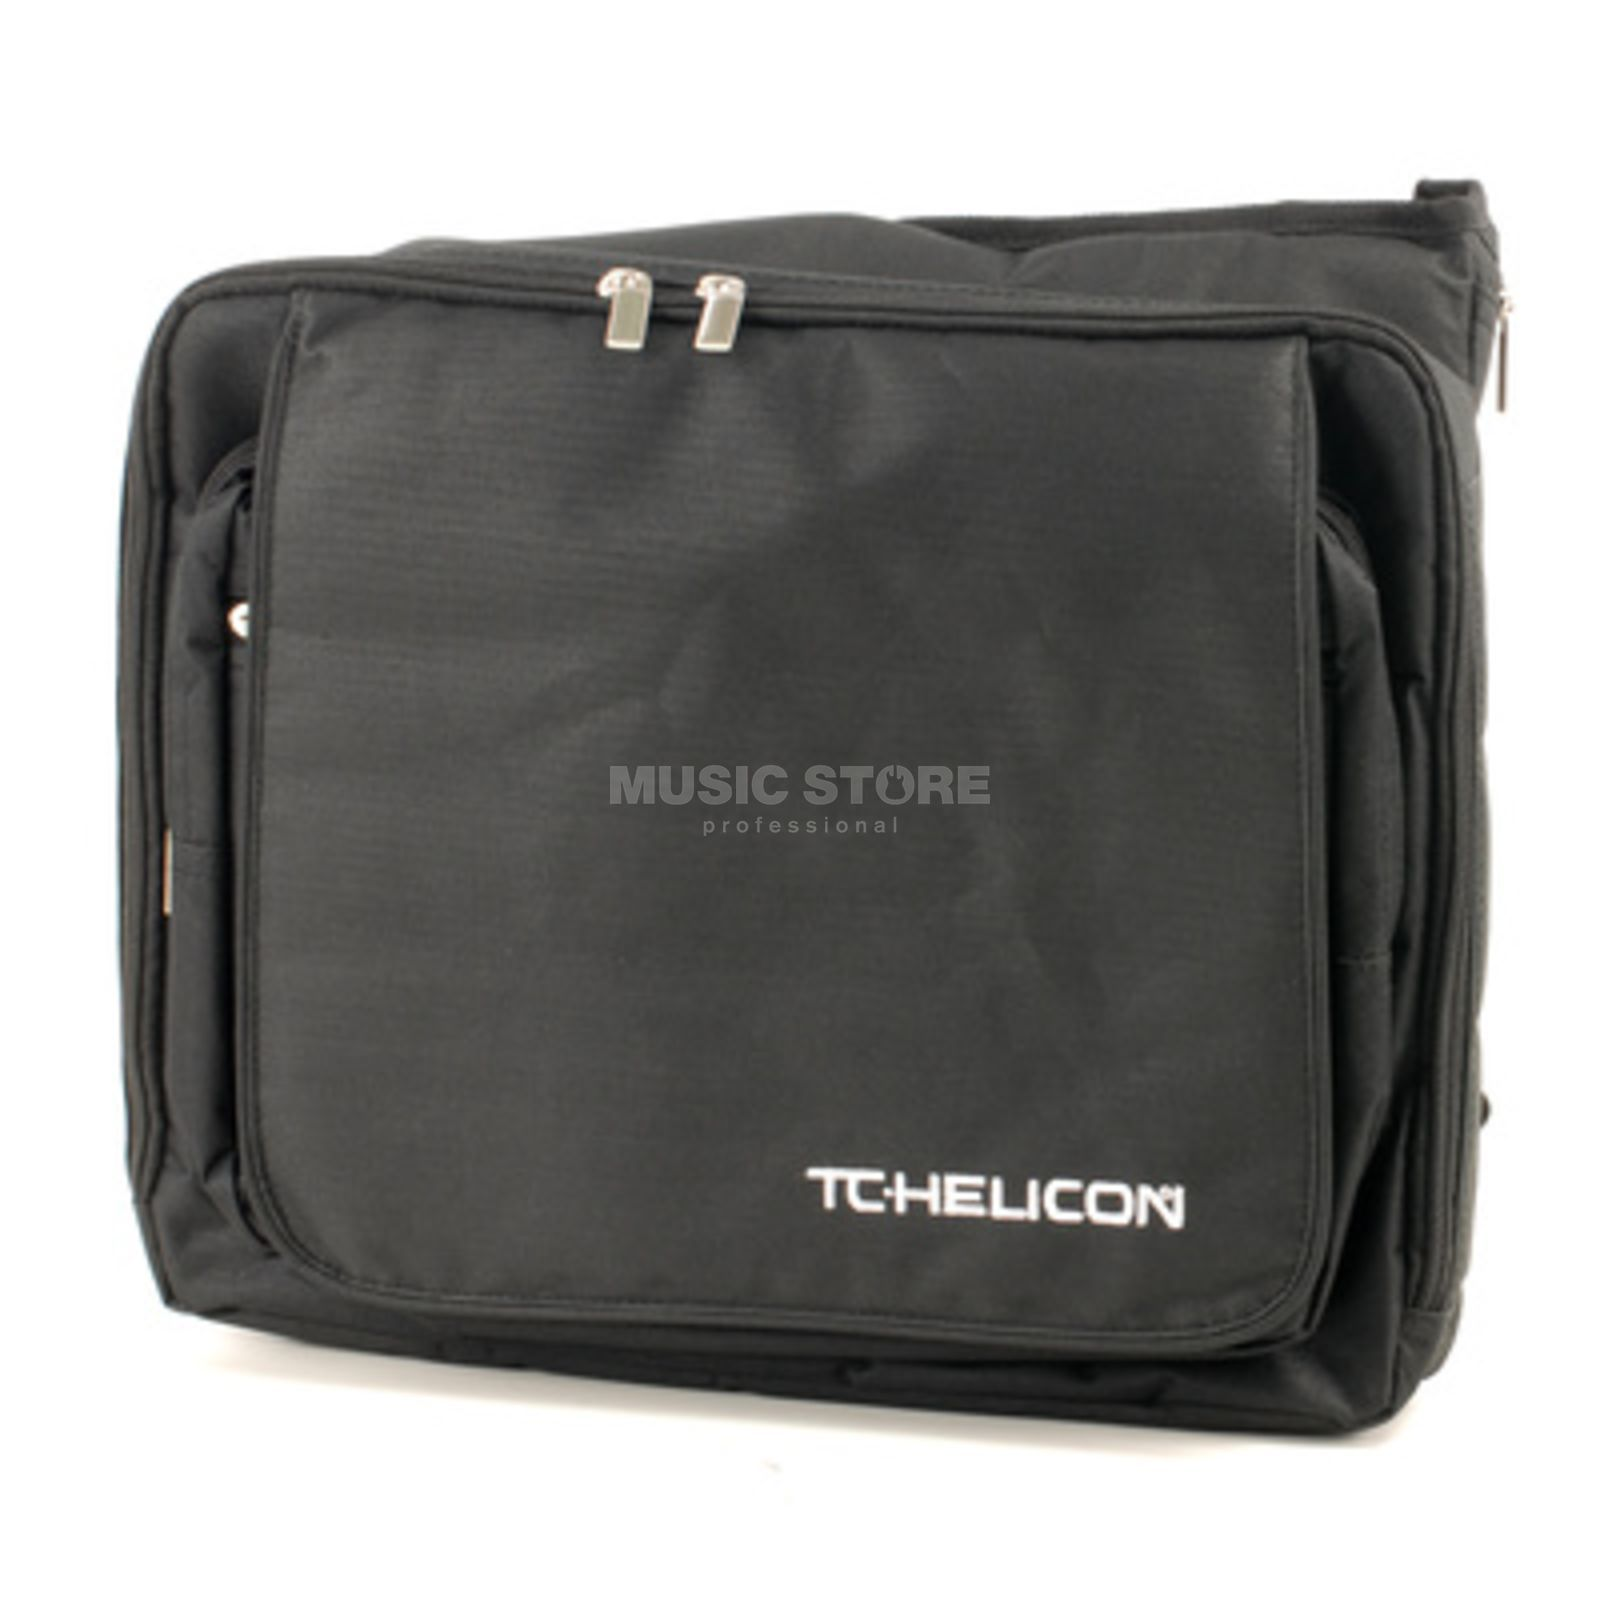 TC-Helicon Gig Bag Bag for VoiceLive / Tone Produktbillede